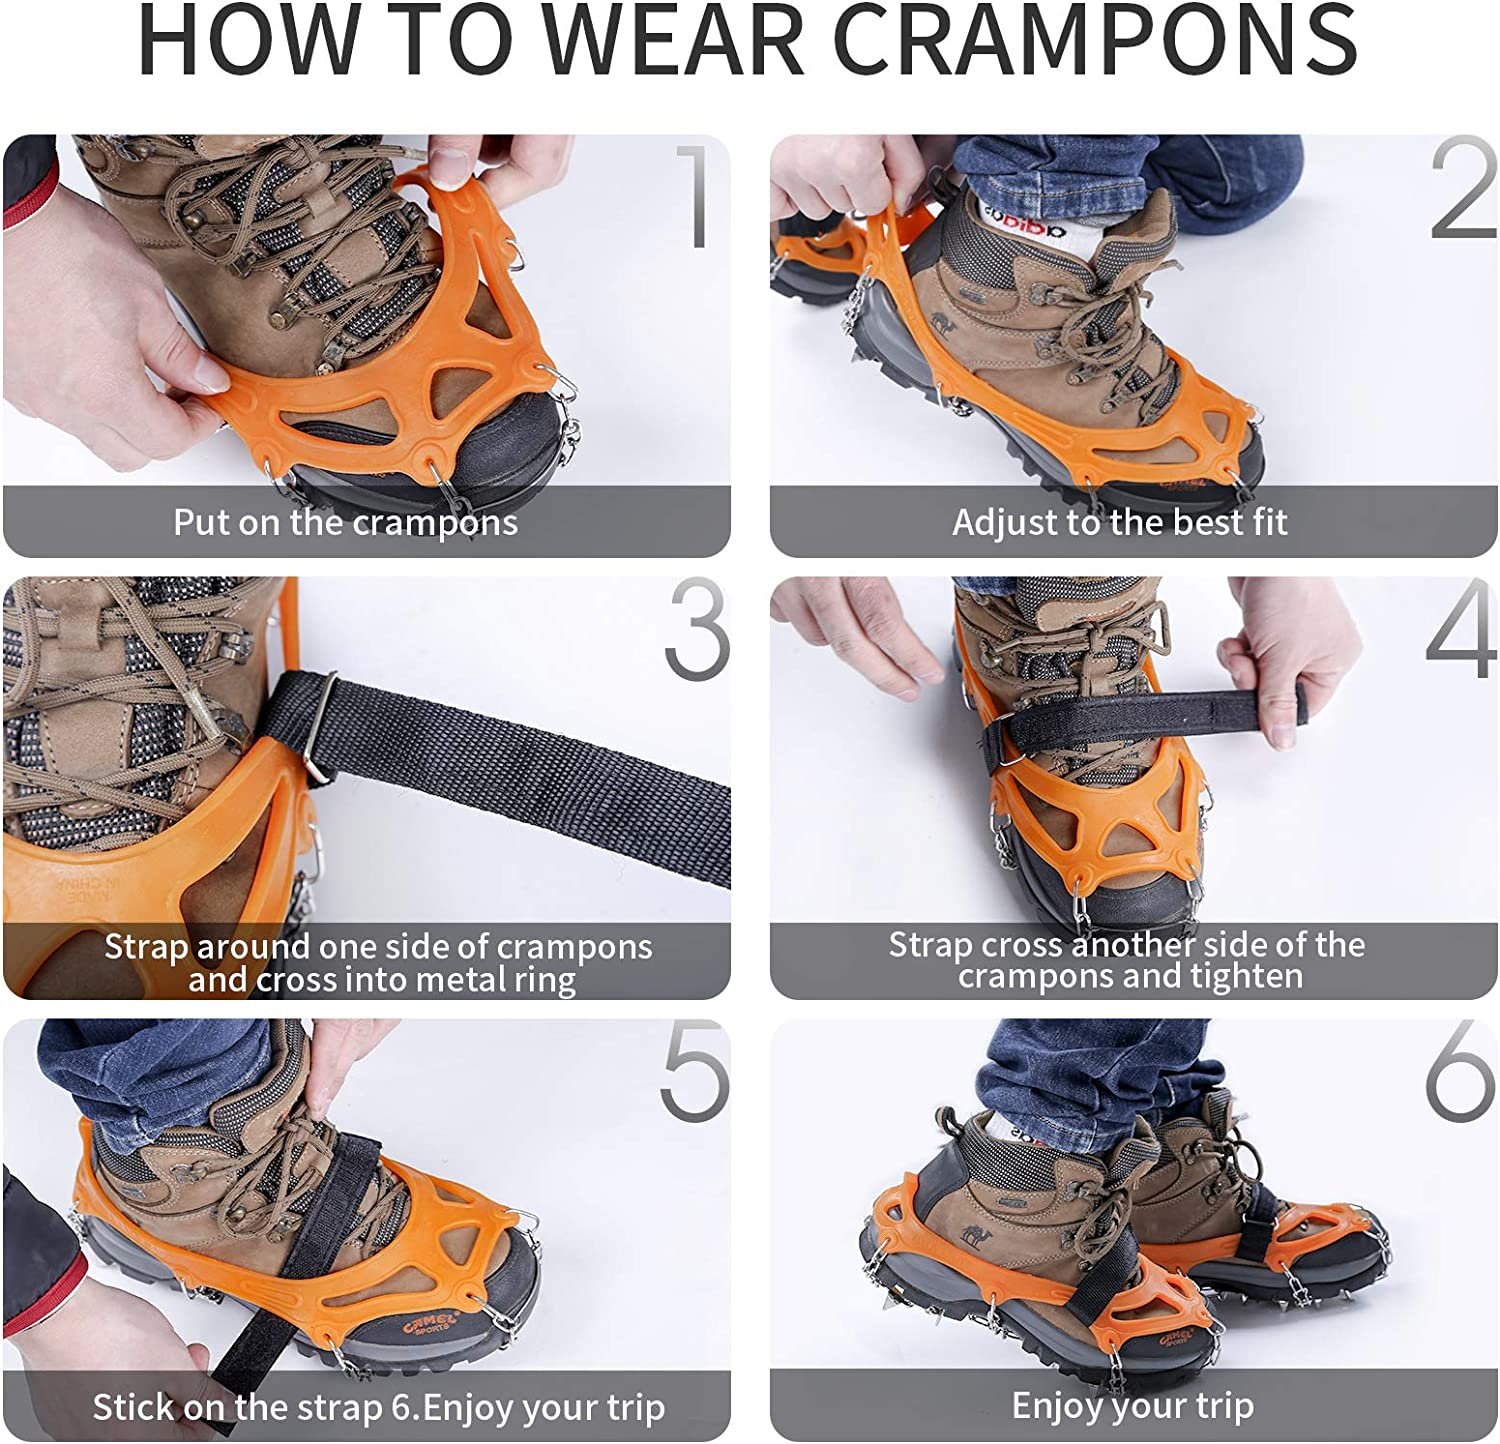 Hewolf Crampons Ice Cleats Traction Snow Grips for Boots Shoes